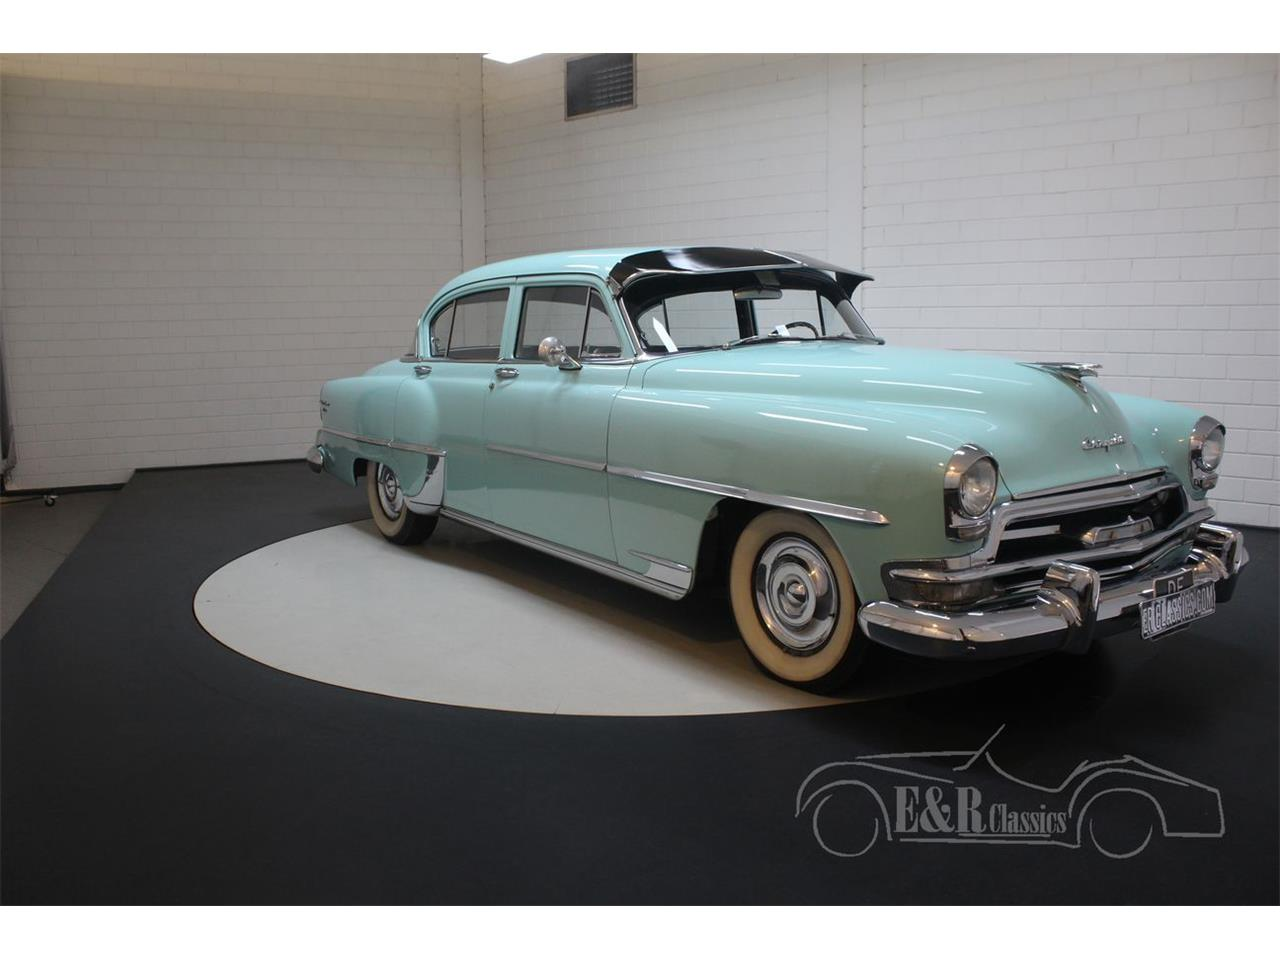 Large Picture of Classic '54 Windsor located in Waalwijk noord brabant - $19,000.00 - QJZL